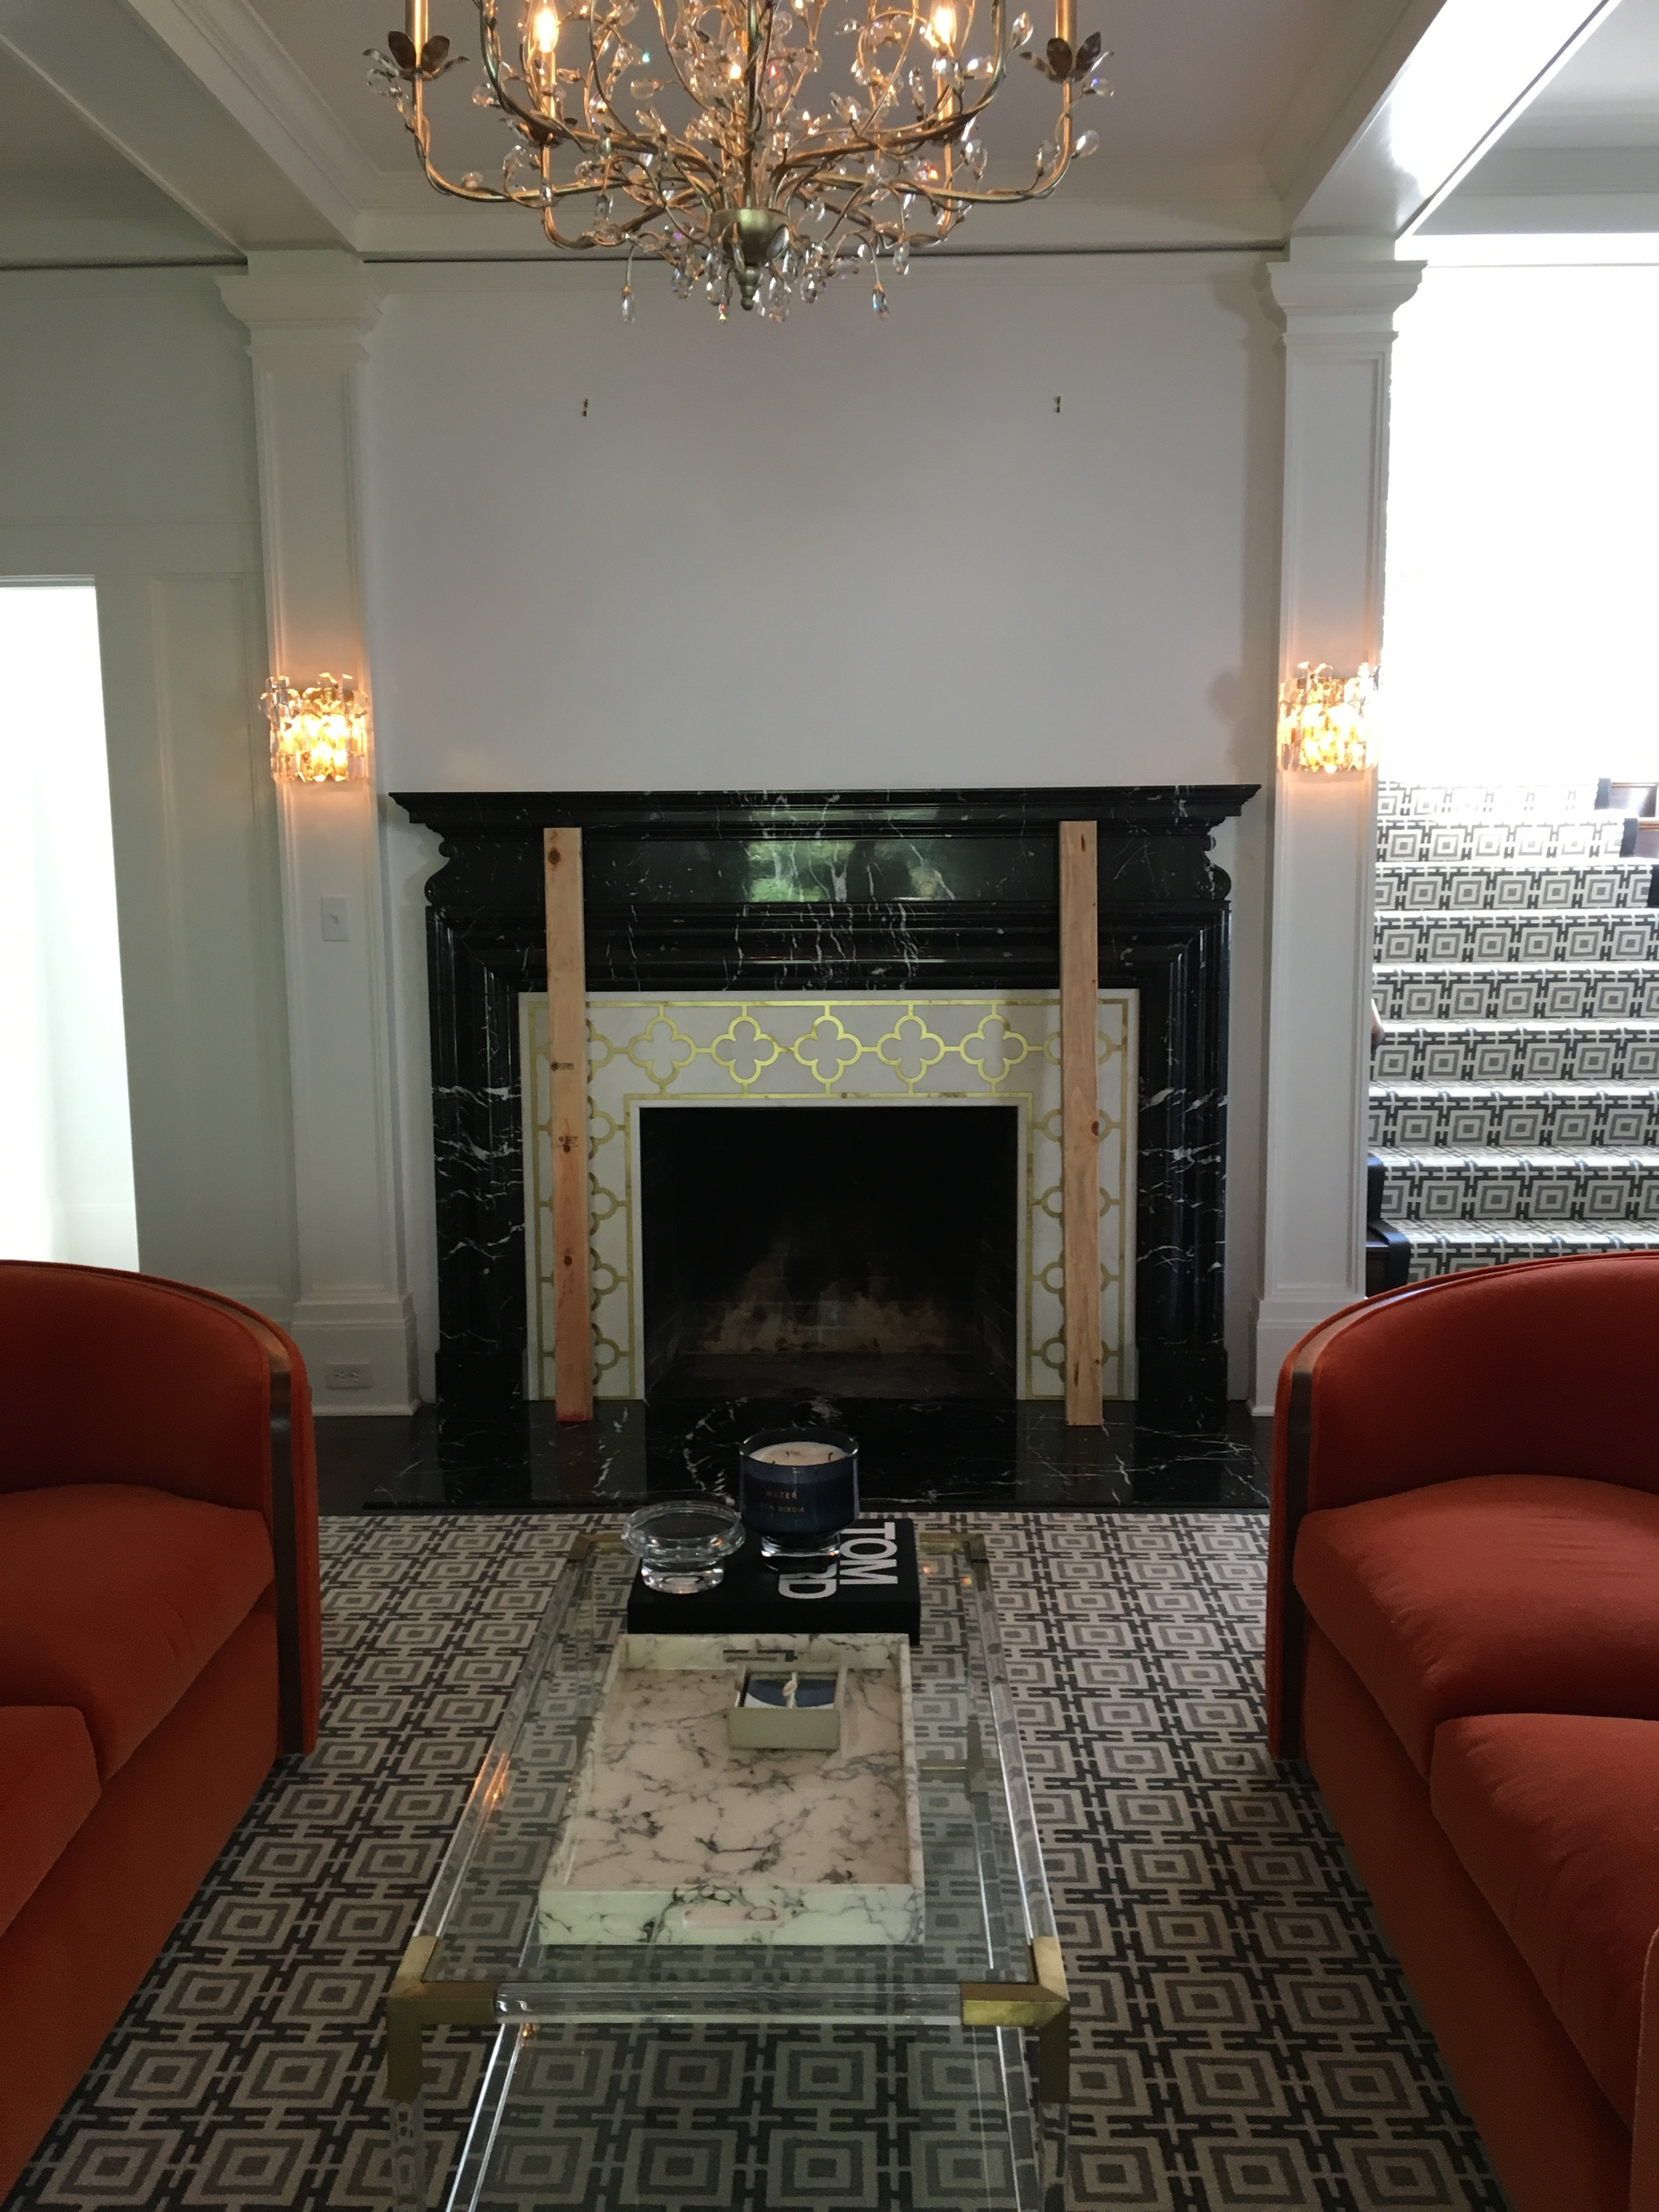 Installation of the fireplace surround almost complete